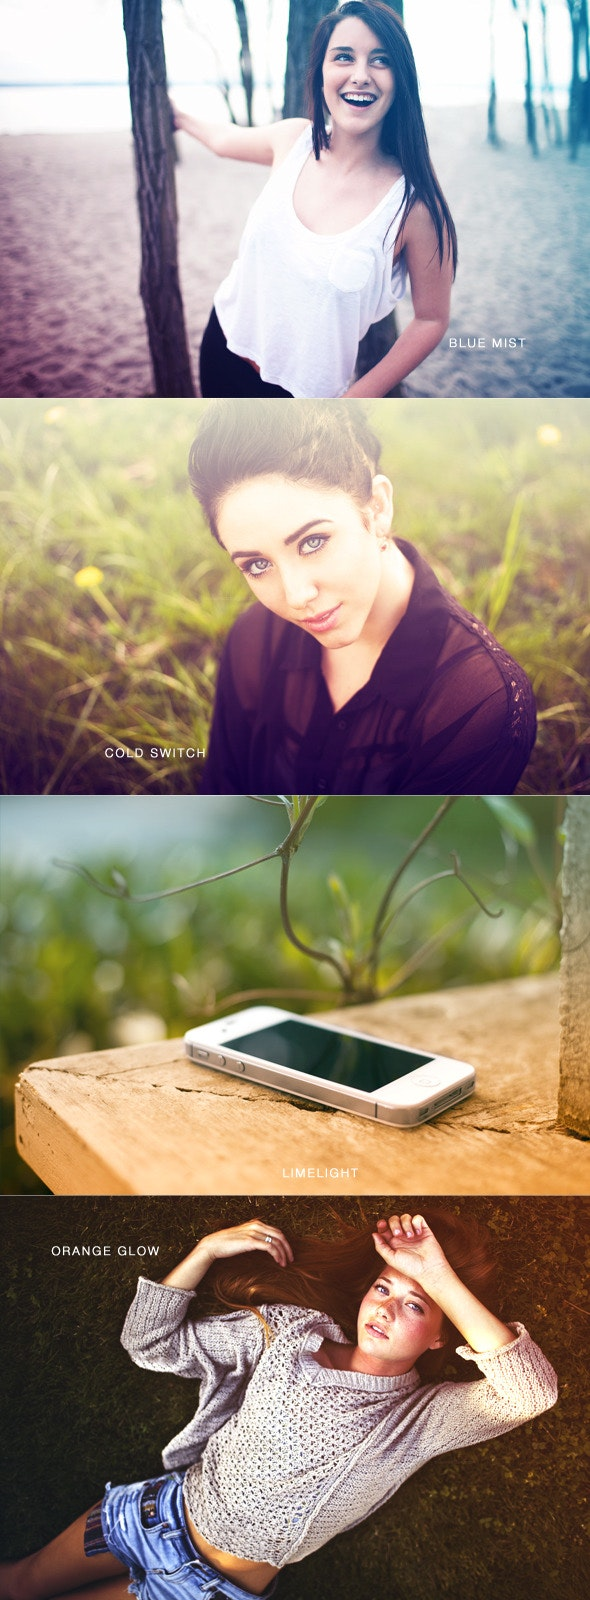 Cold Summer Photography Actions - Photo Effects Actions